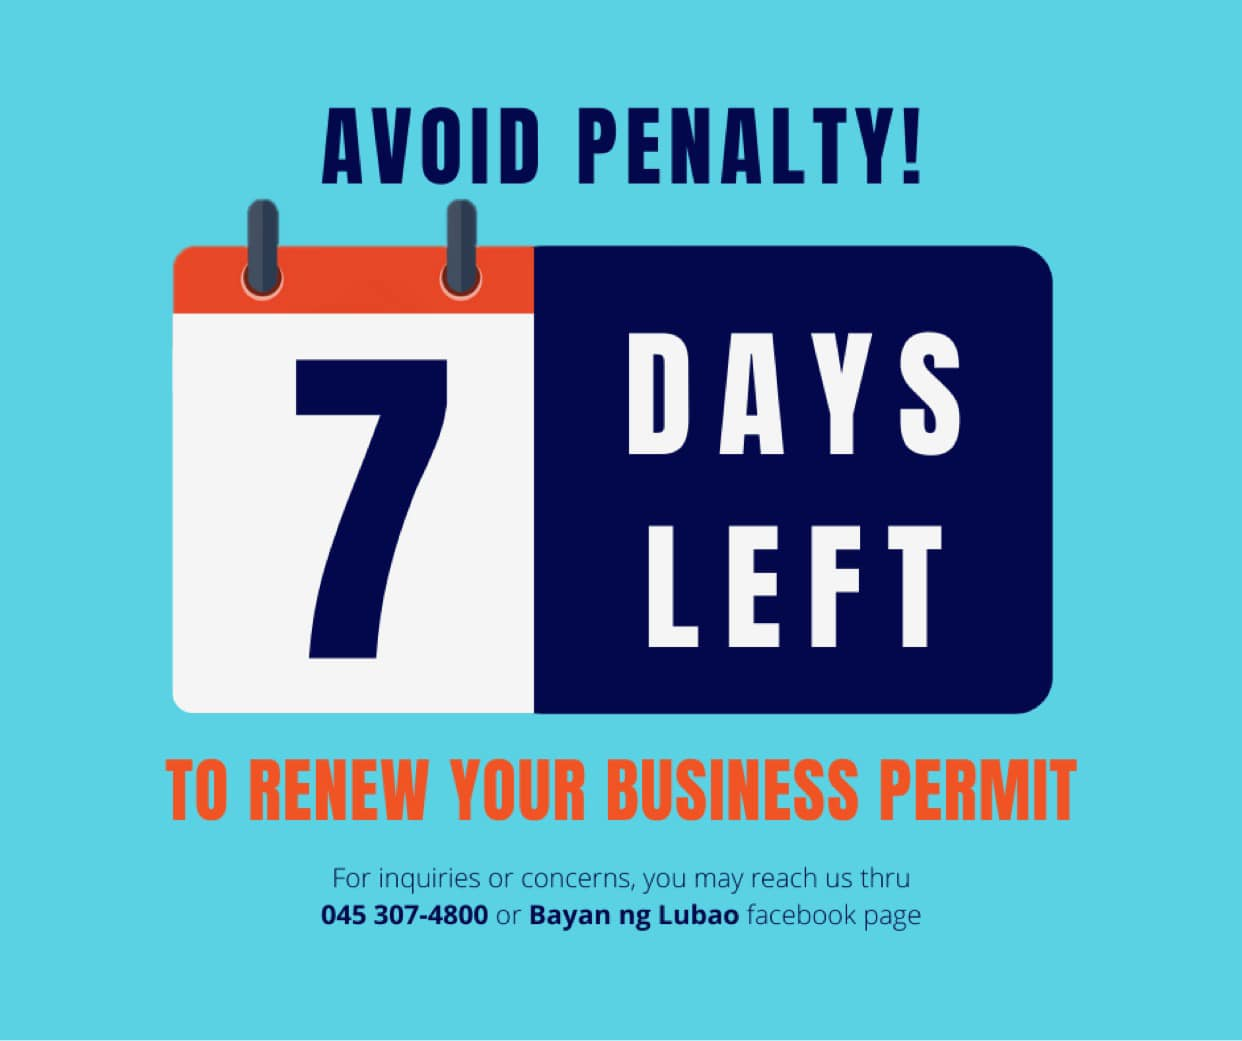 Avoid Penalty 7 Days Left to Renew your Business Permit